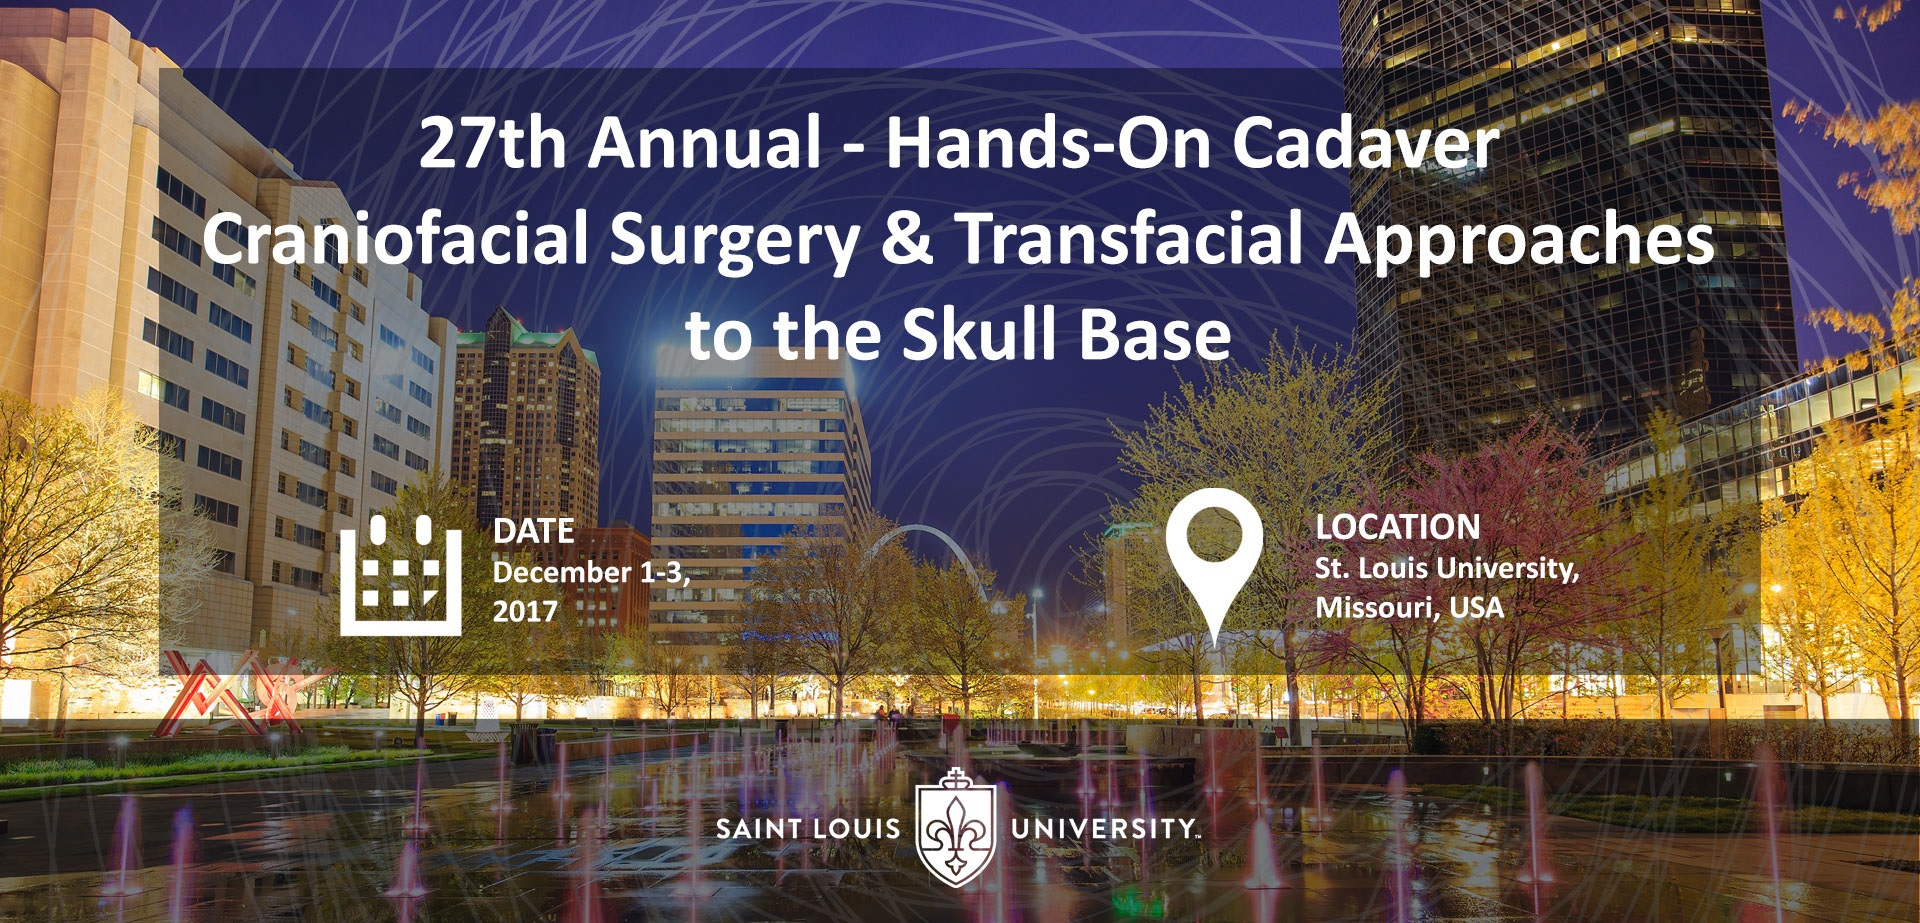 27th Annual Craniofacial Surgery and Transfacial Approaches to the Skull Base